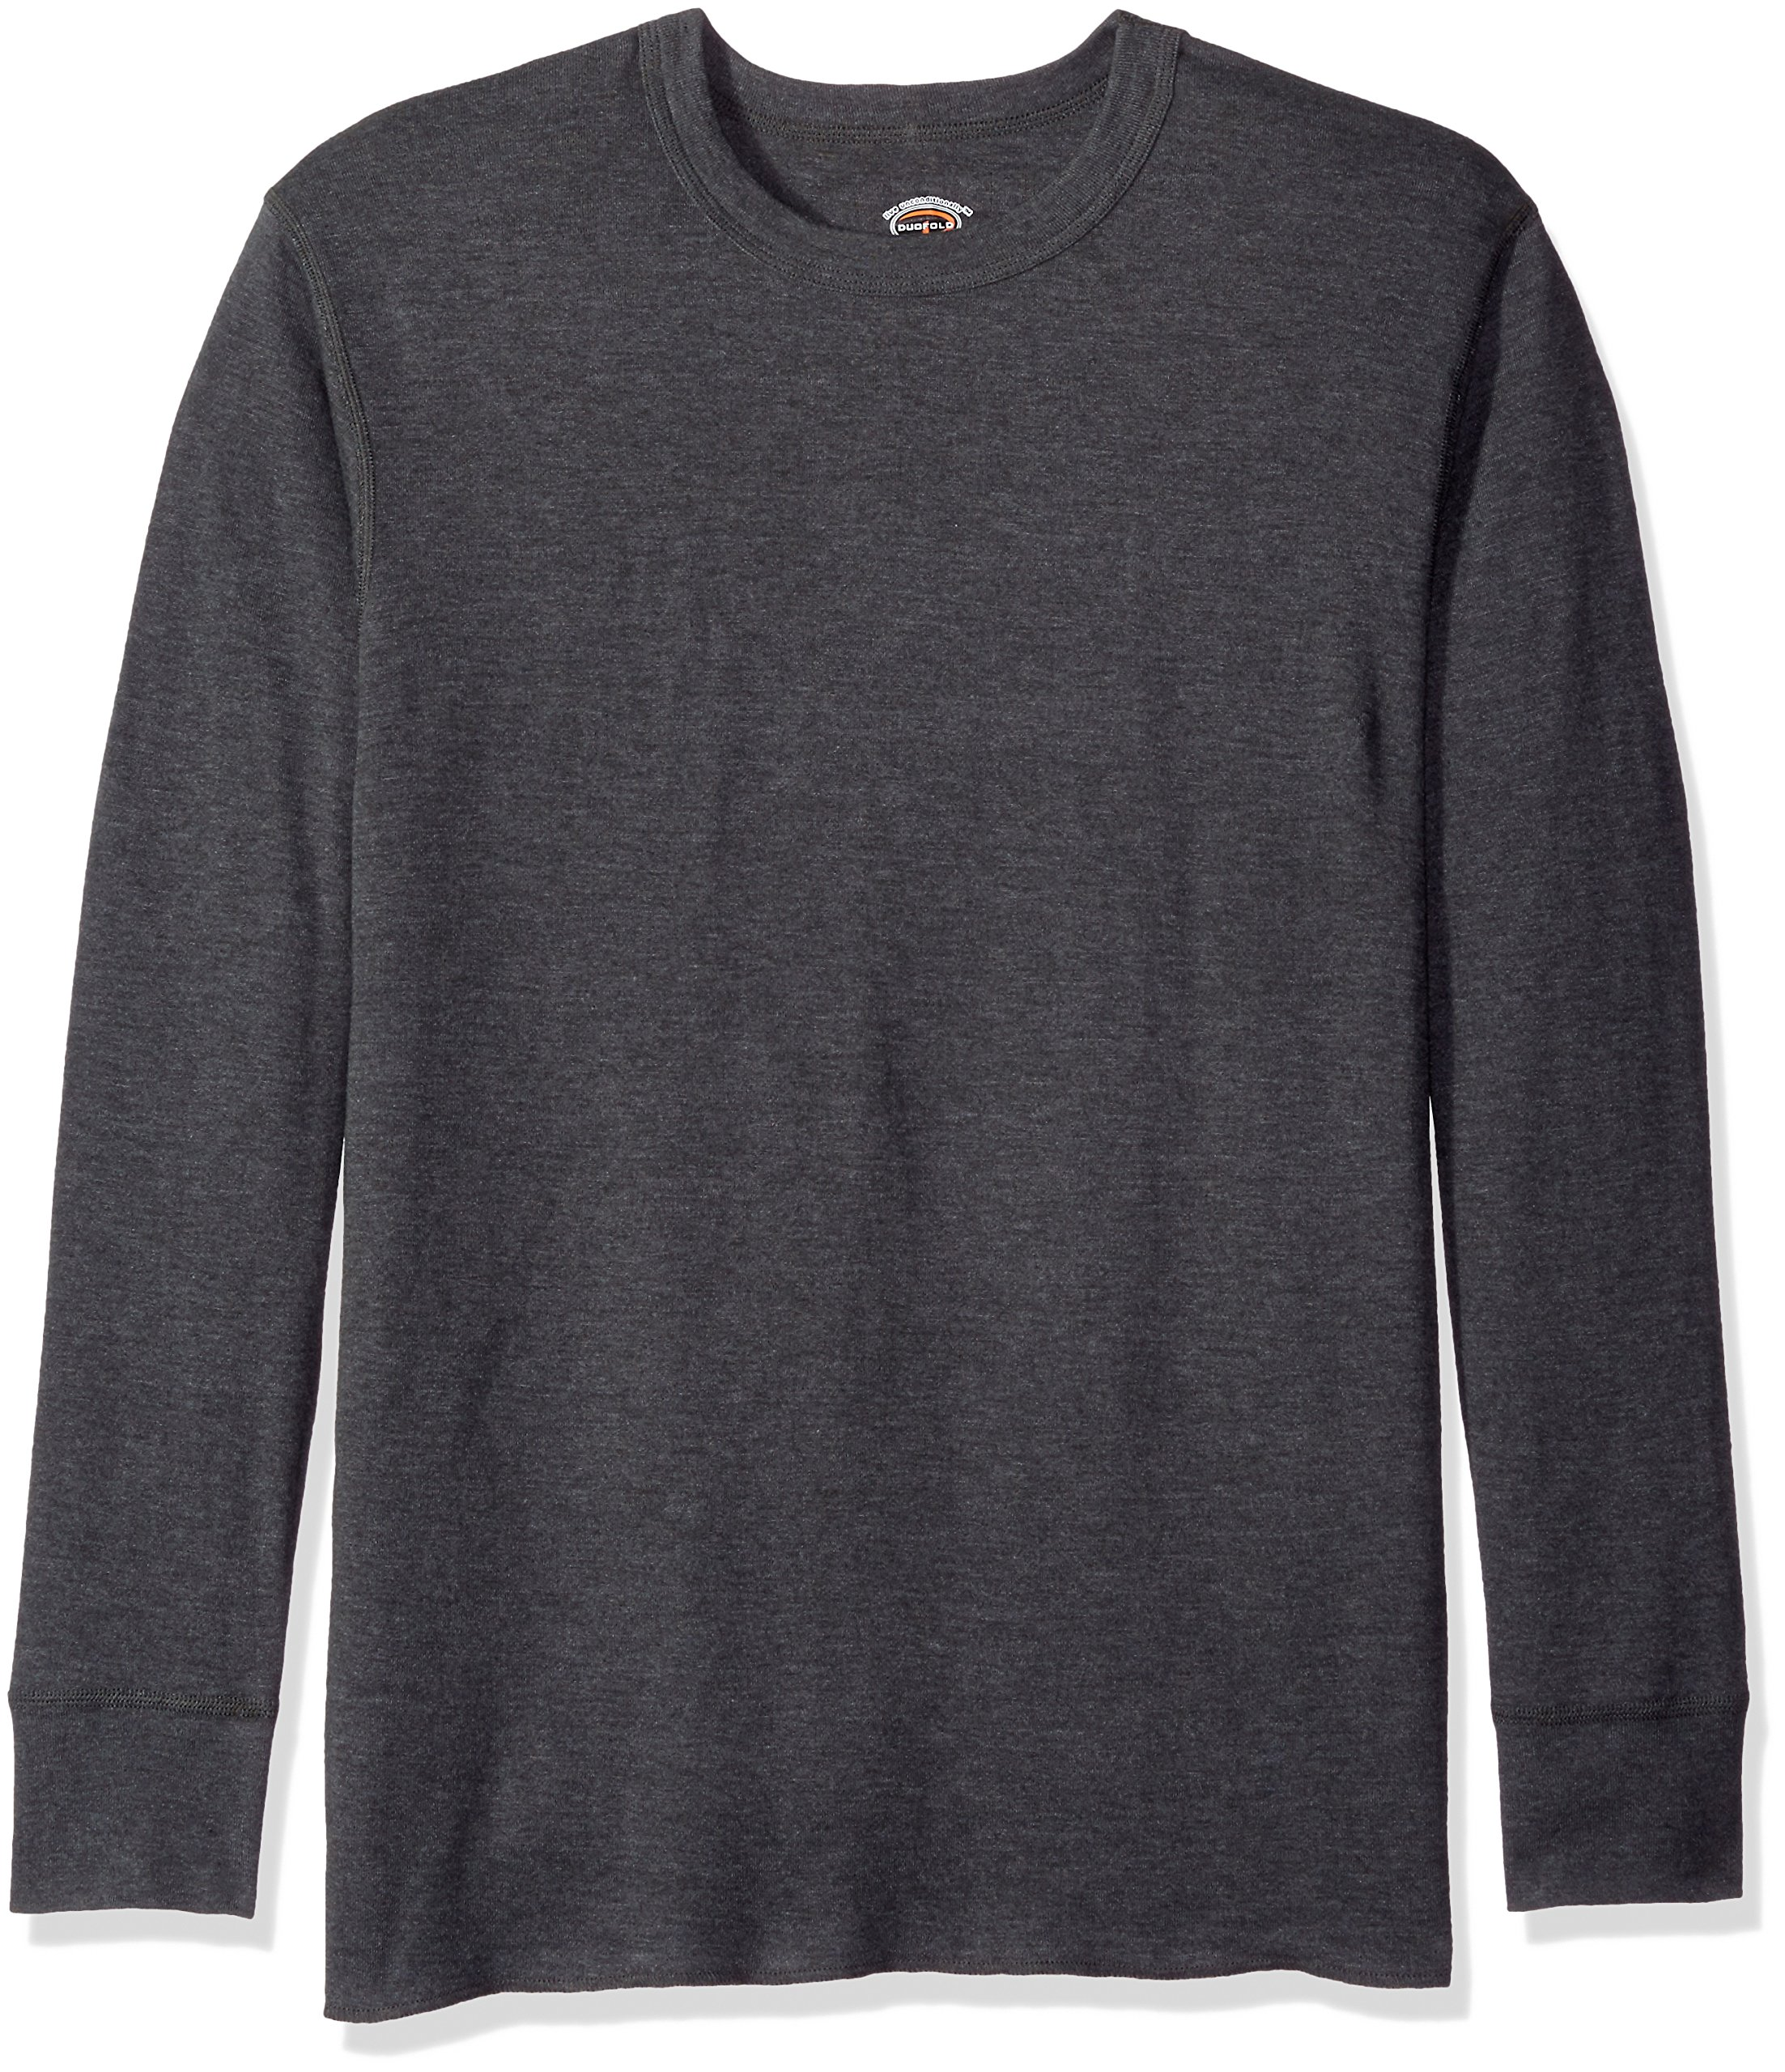 Duofold Men's Mid Weight Wicking Thermal Shirt, Granite Heather, L by Duofold